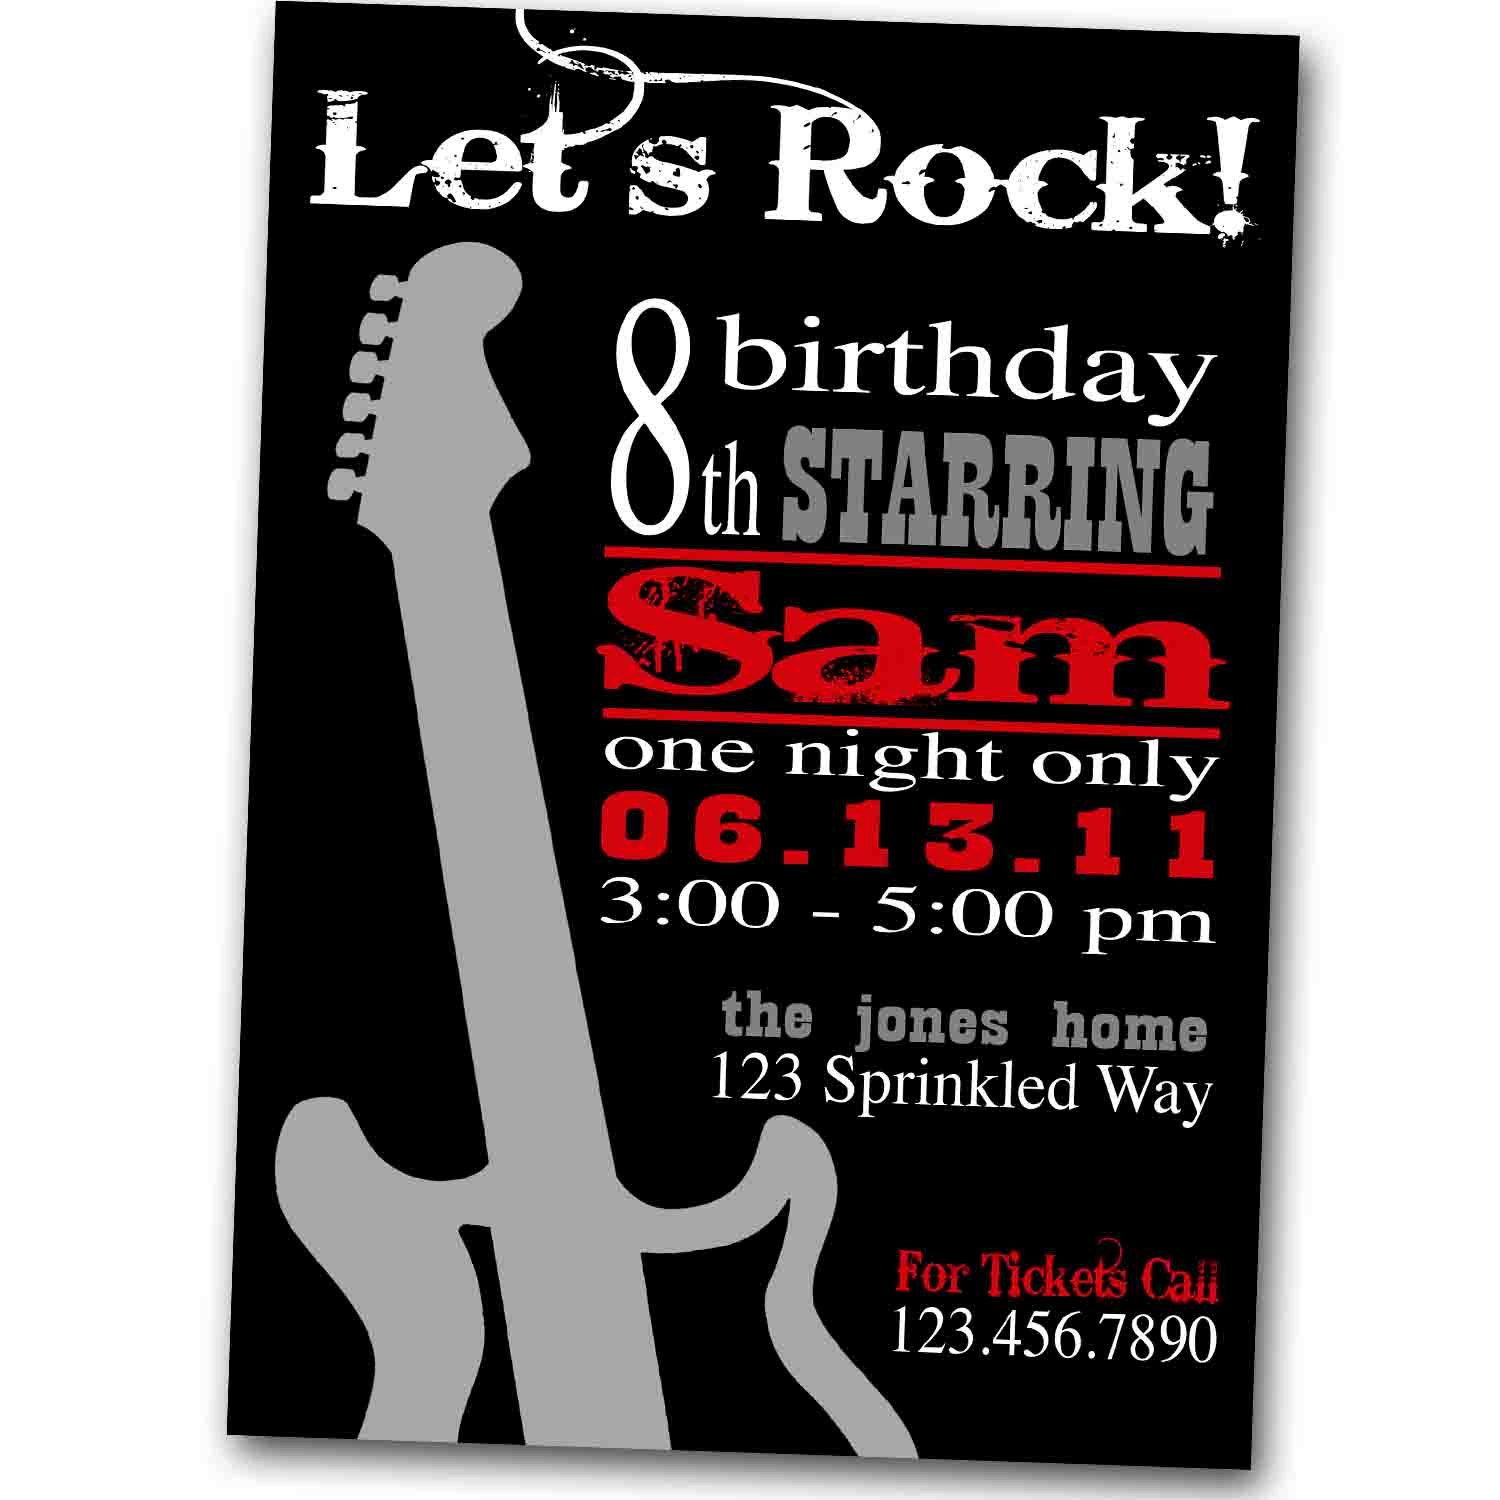 Pin by Ylime Suz on Rock N Roll Birthday party | Pinterest | Birthdays